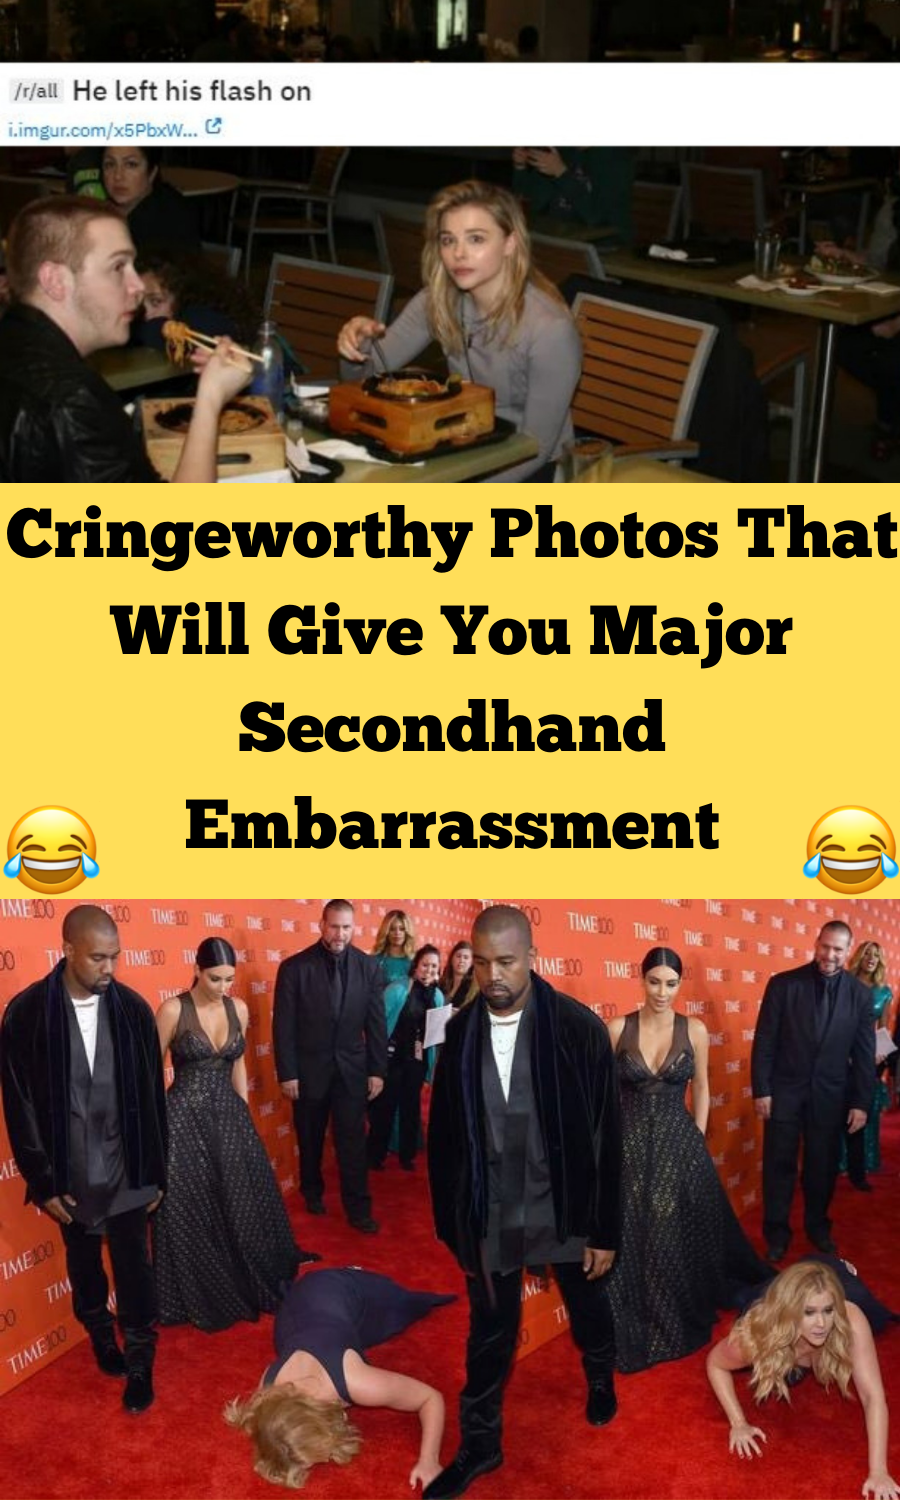 Cringeworthy Photos That Will Give You Major Secondhand